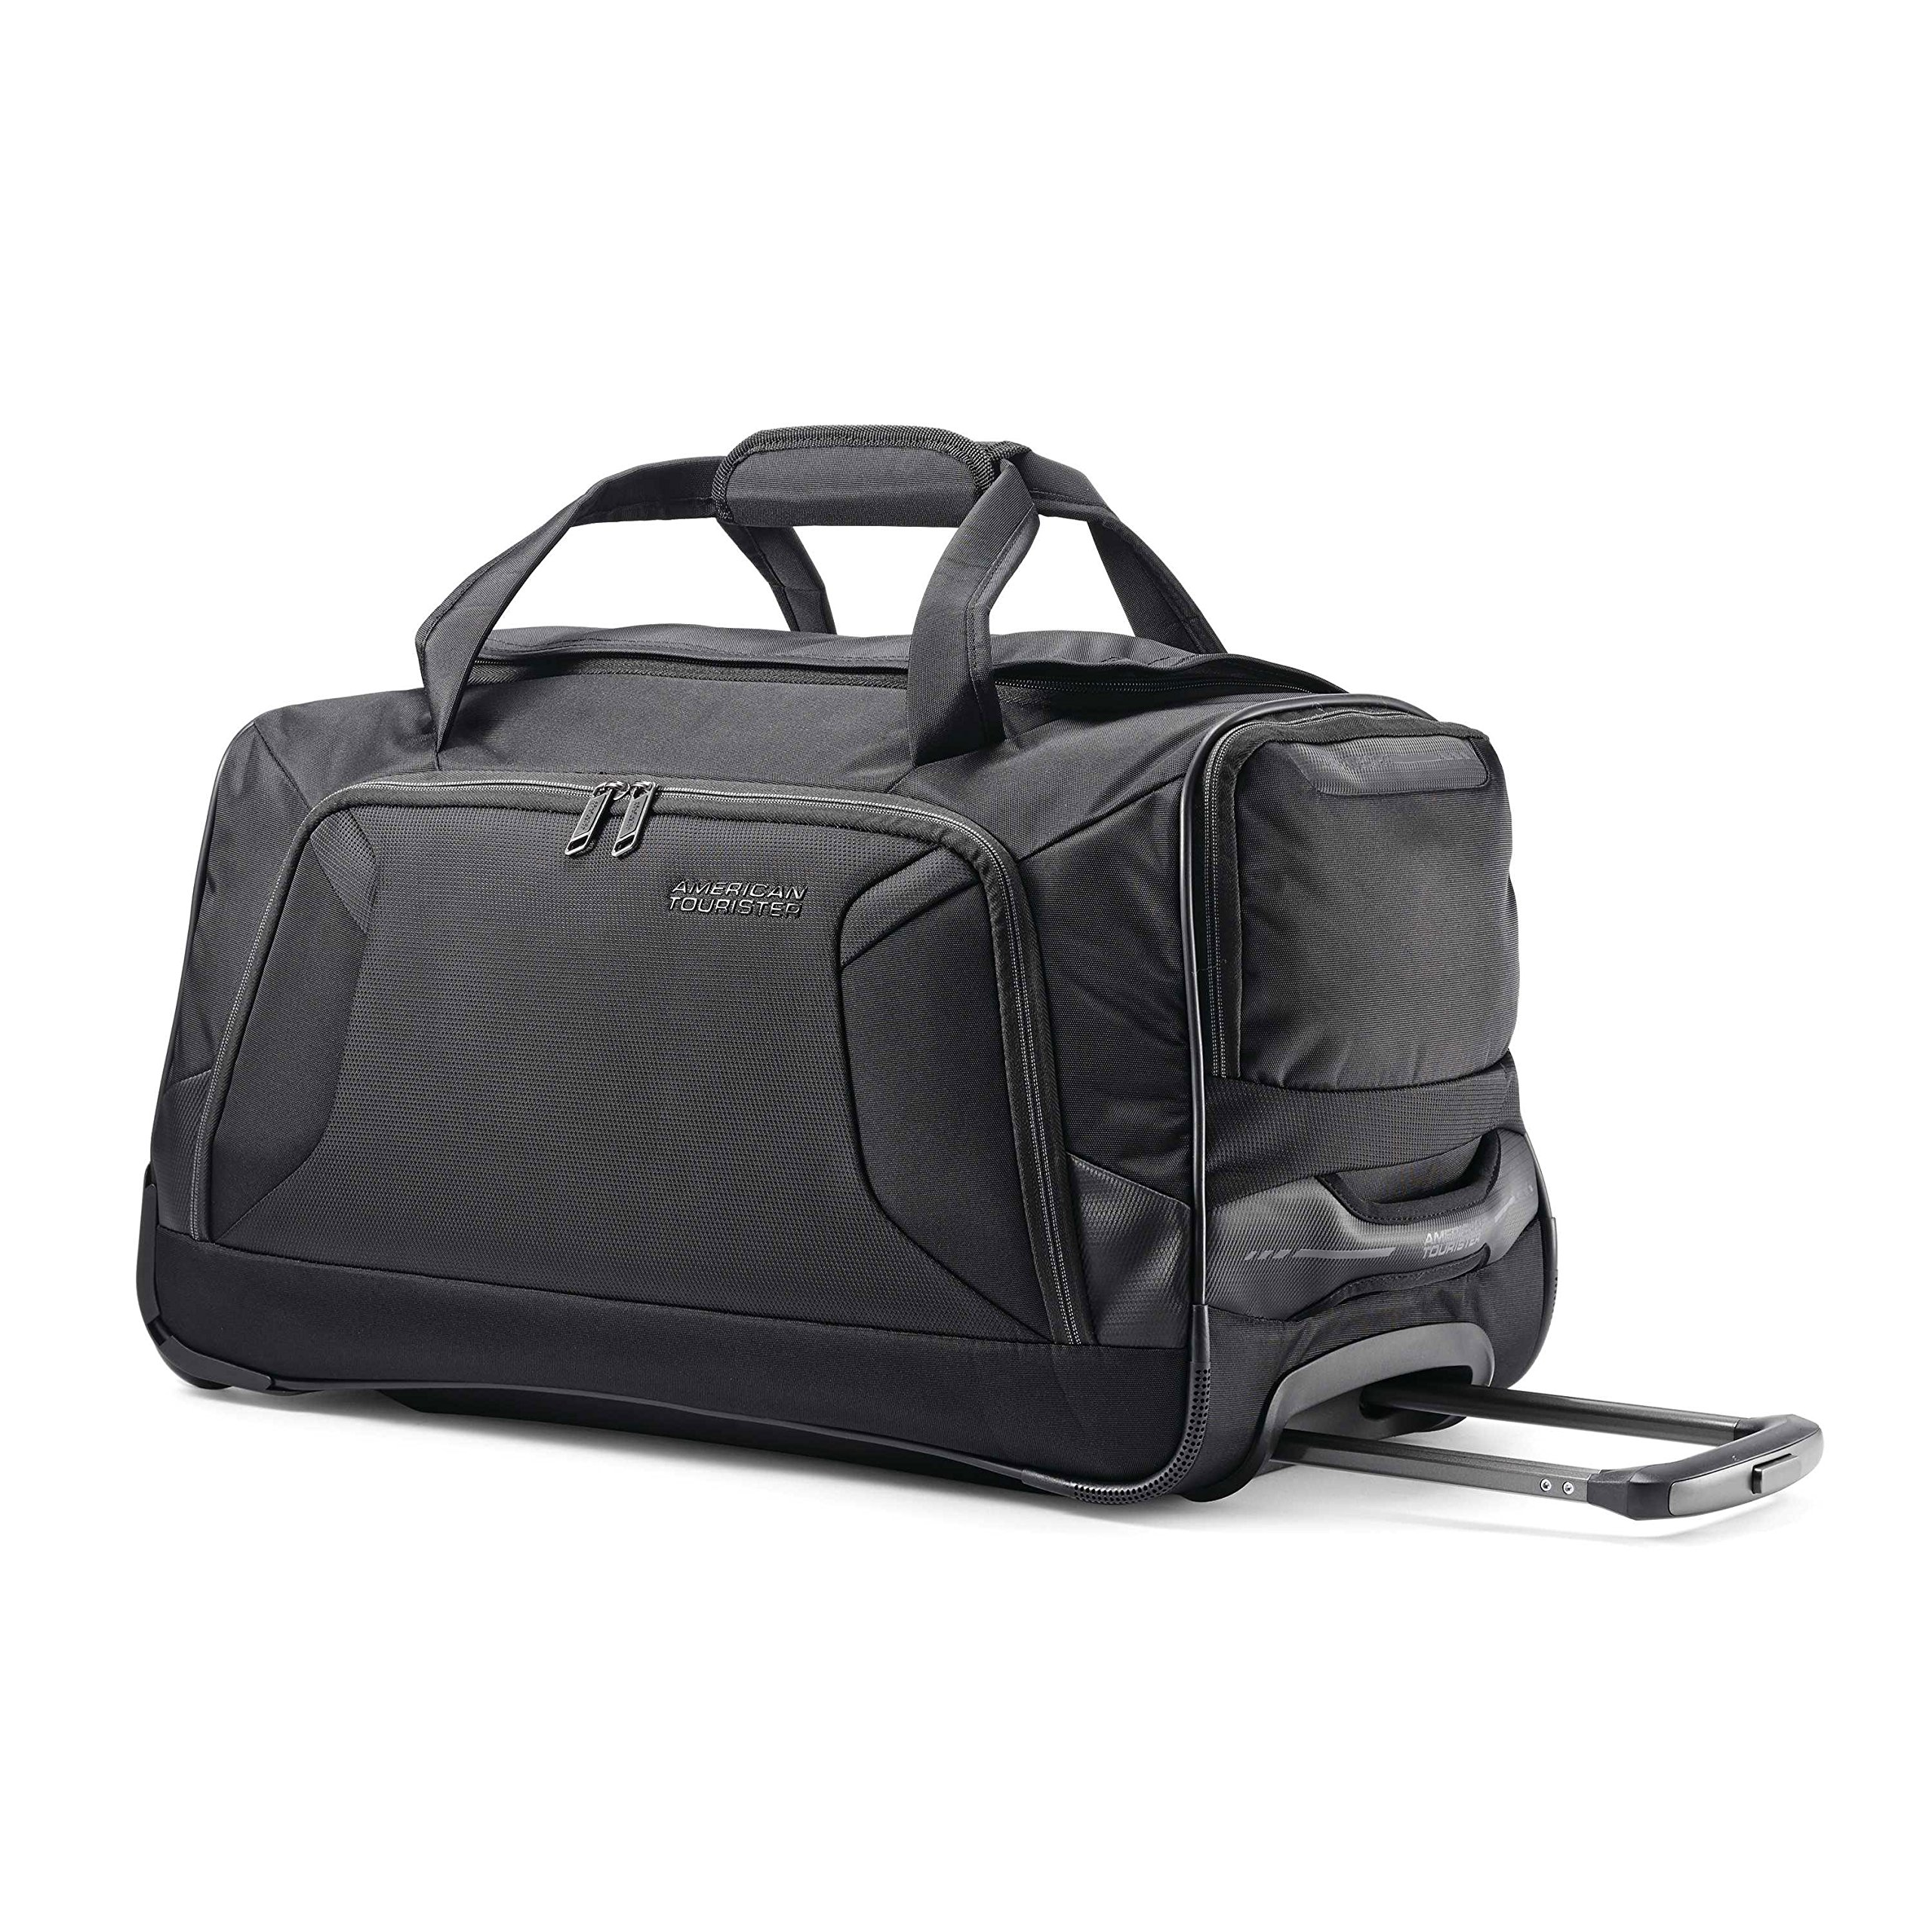 American Tourister Wheeled Duffel Black